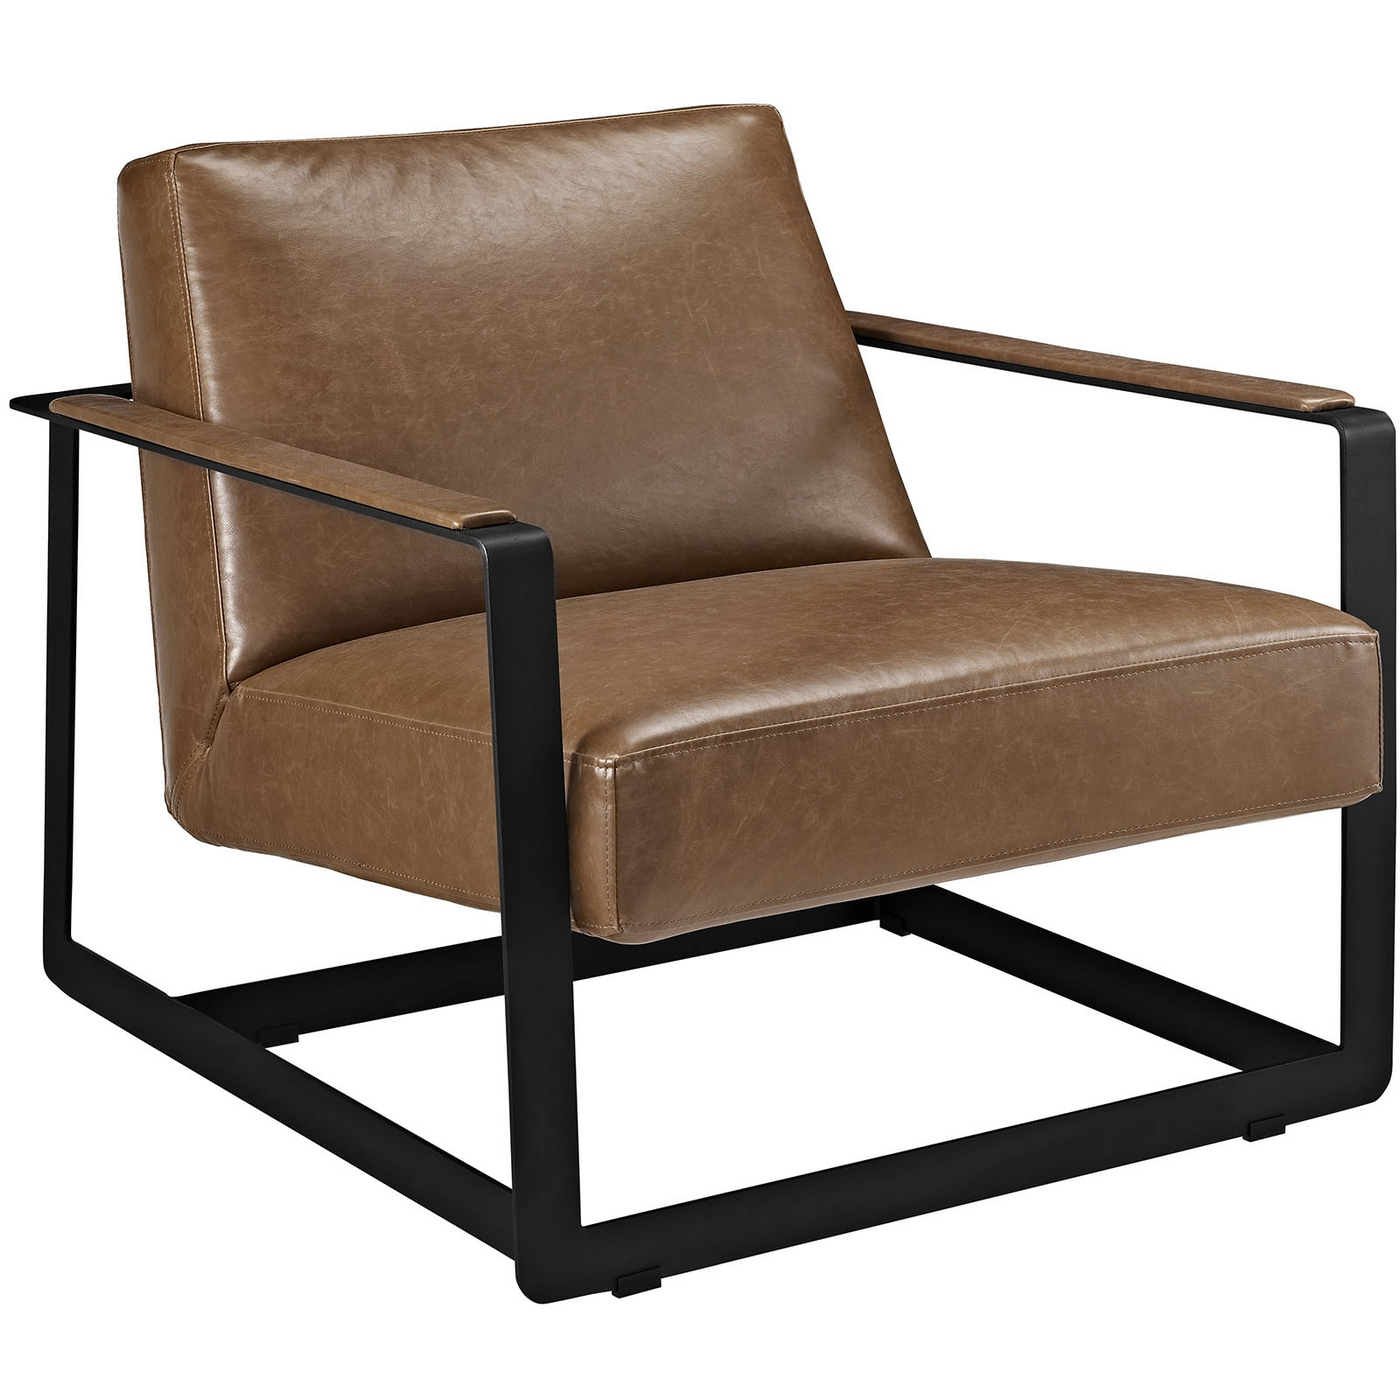 accent chairs under 150 2 leather massage chair seg contemporary vinyl upholstered with steel